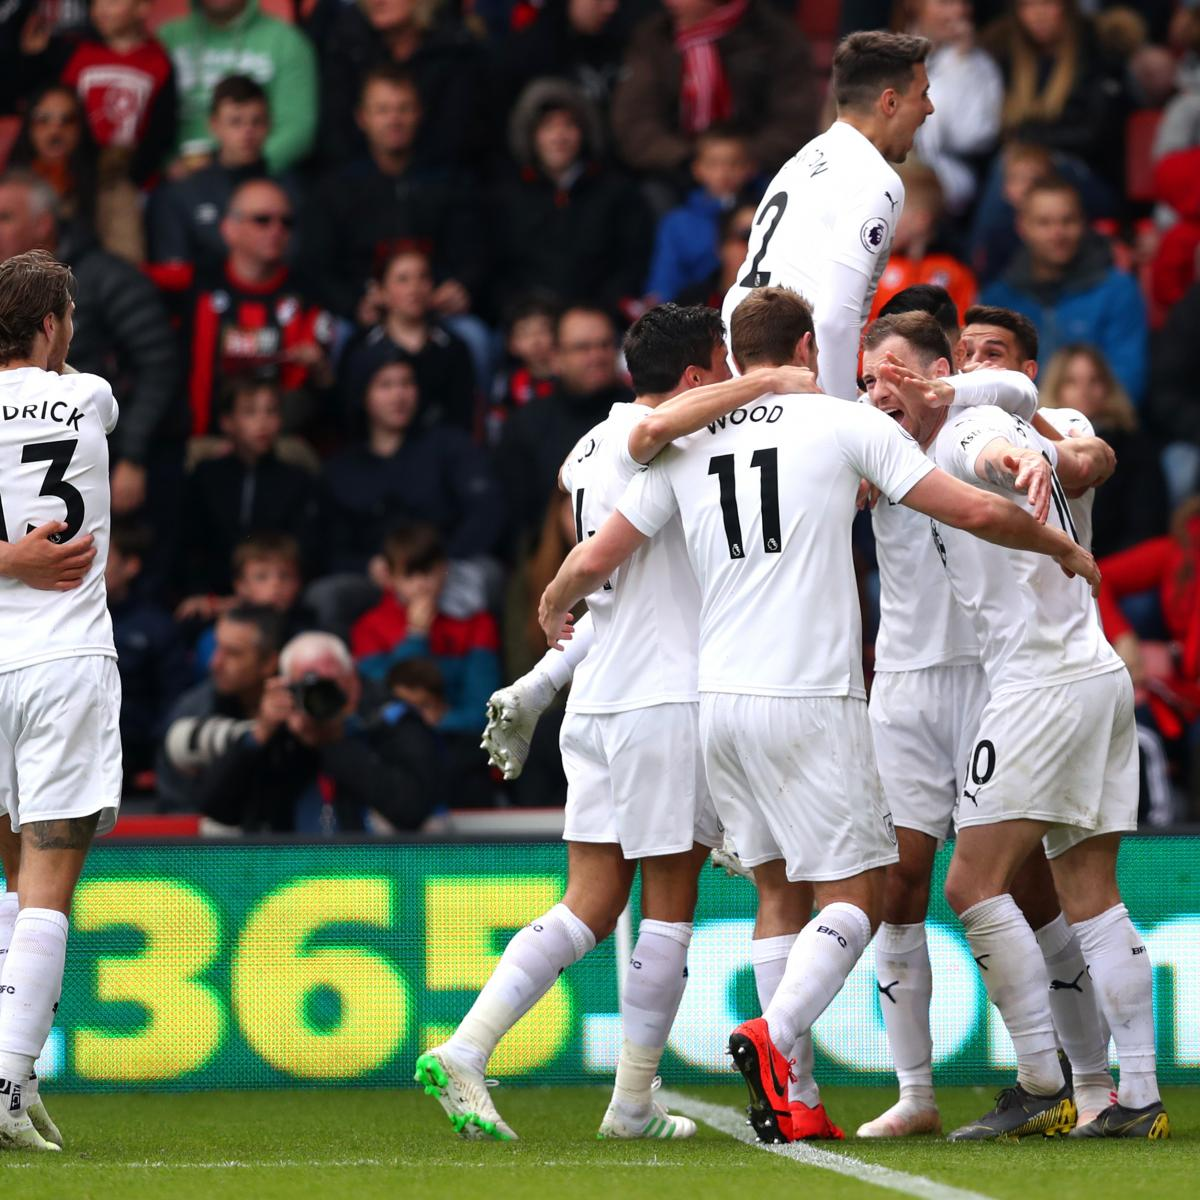 Manchester United 3 1 Huddersfield Result: Premier League Results Week 33: EPL Scores, Updated Table